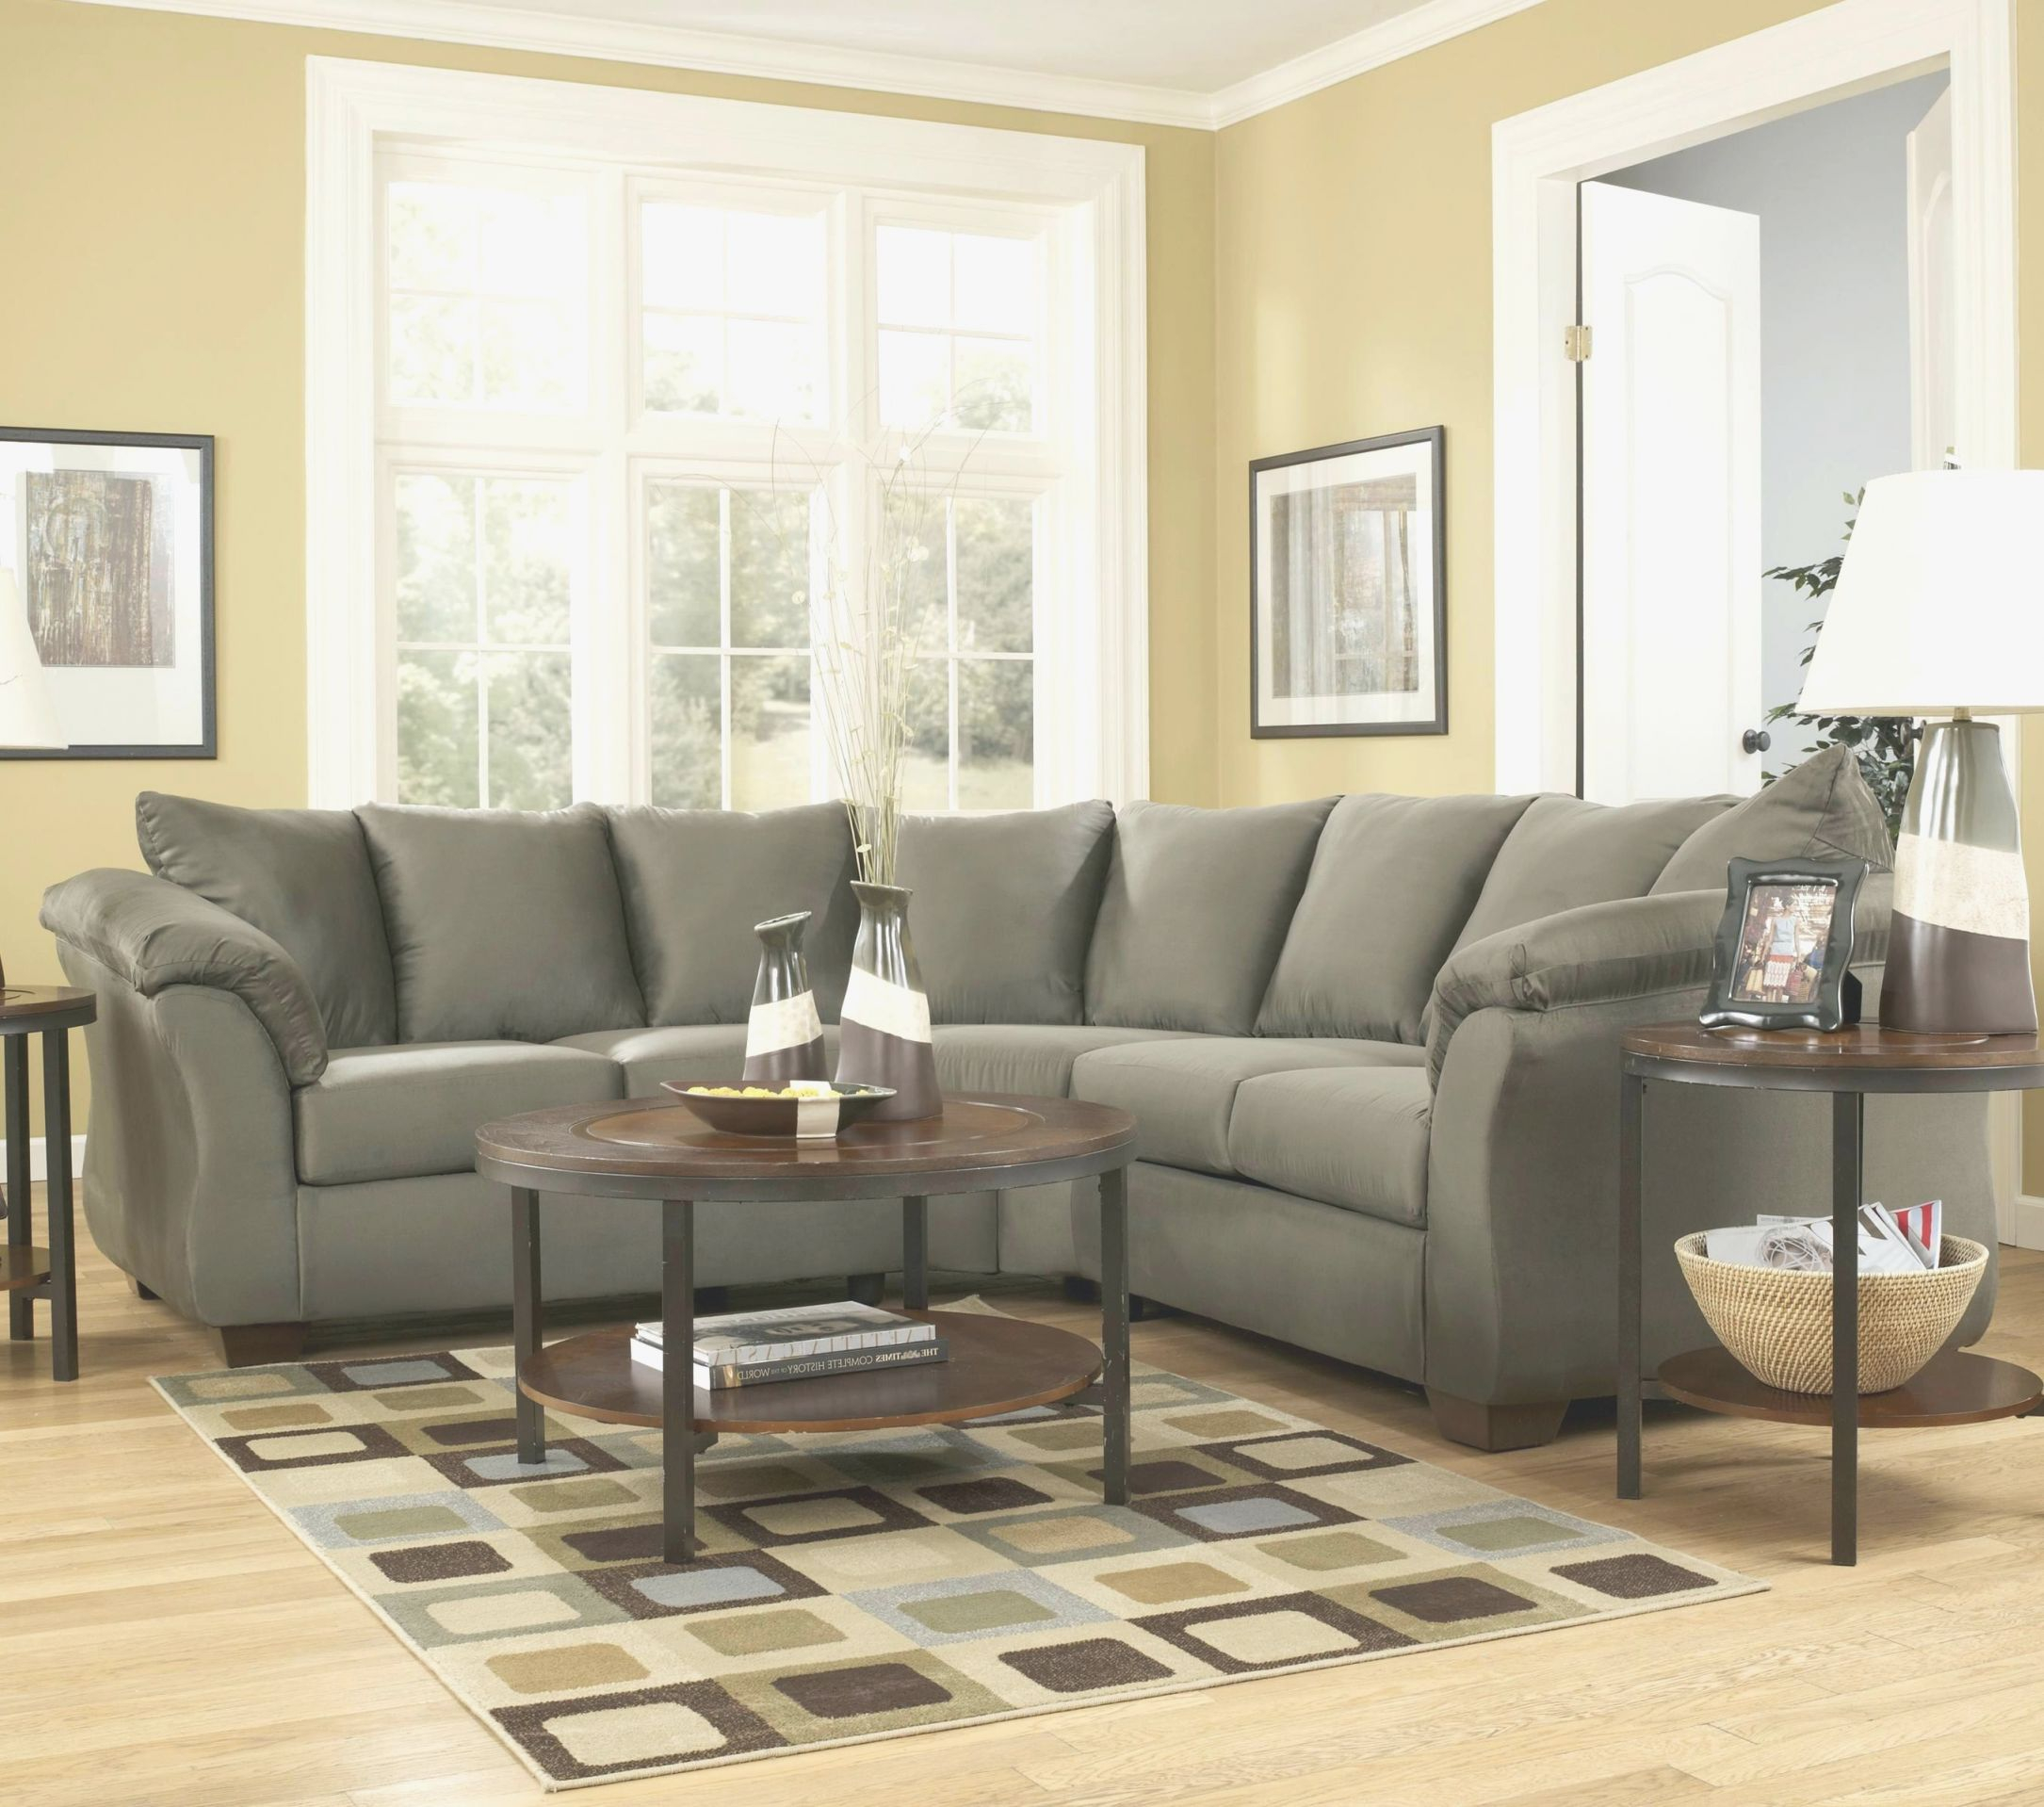 Dacian groza dacian groza we've all seen cold rooms with furnishings lined inelegantly aga. Luxury El Dorado Furniture Living Room Sets - Awesome Decors